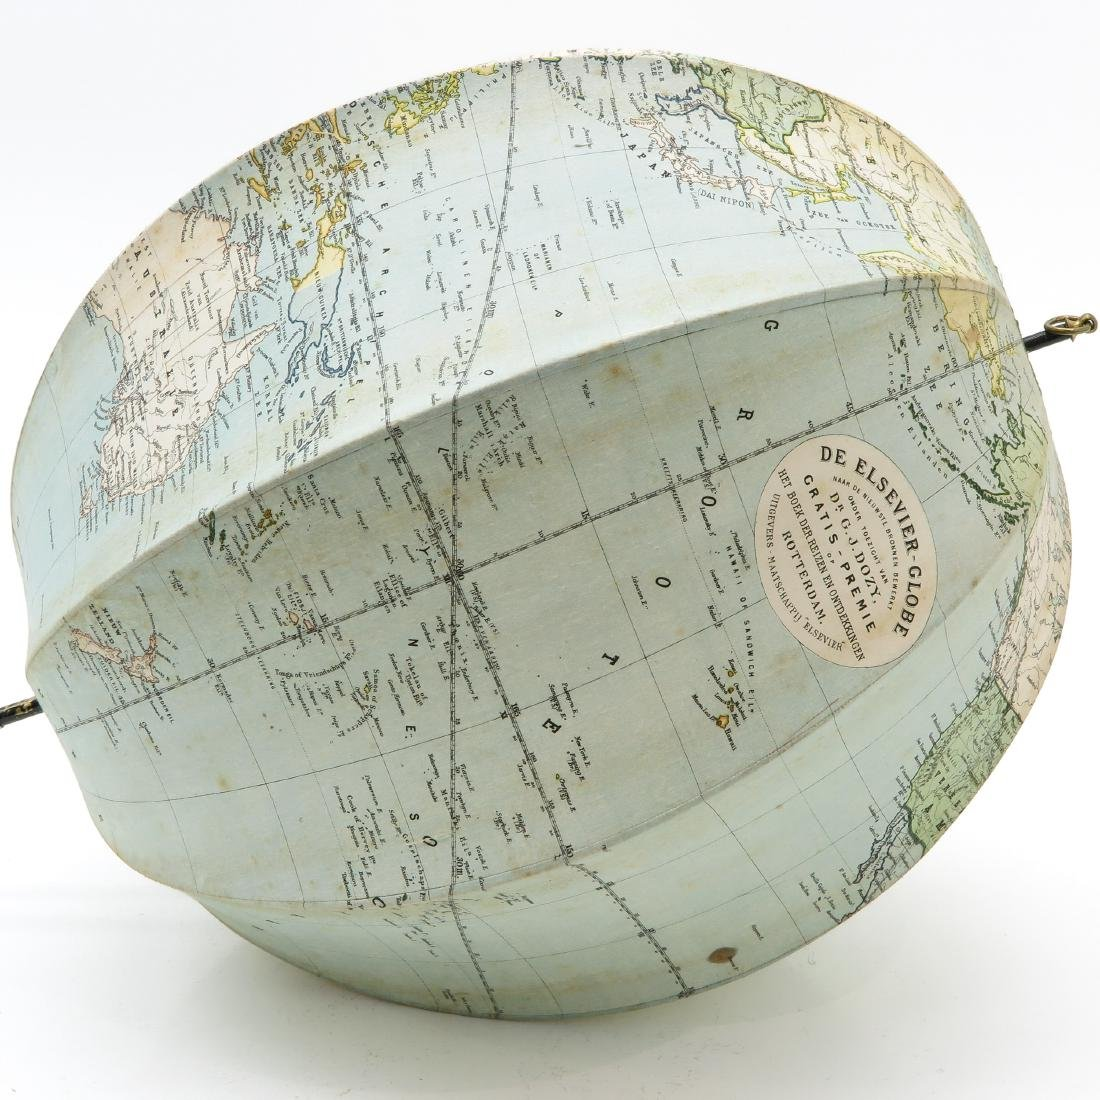 Elsevier Collapsible Globe with Wood Box Circa 1881 - 2